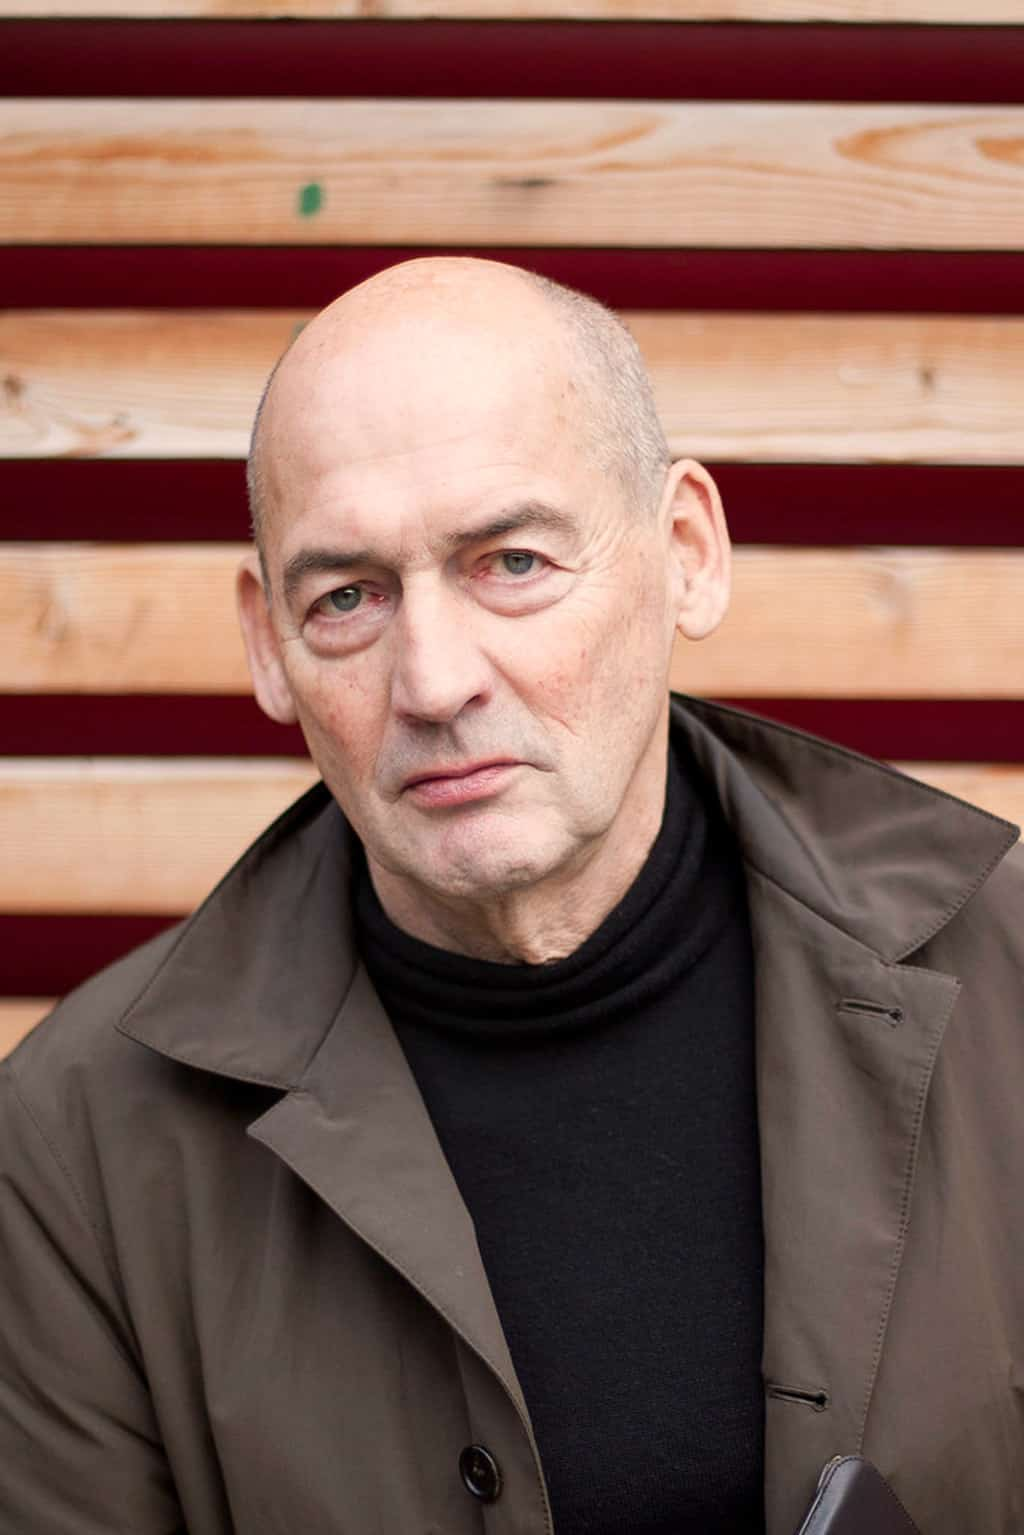 Rem Koolhaas famous architects archute